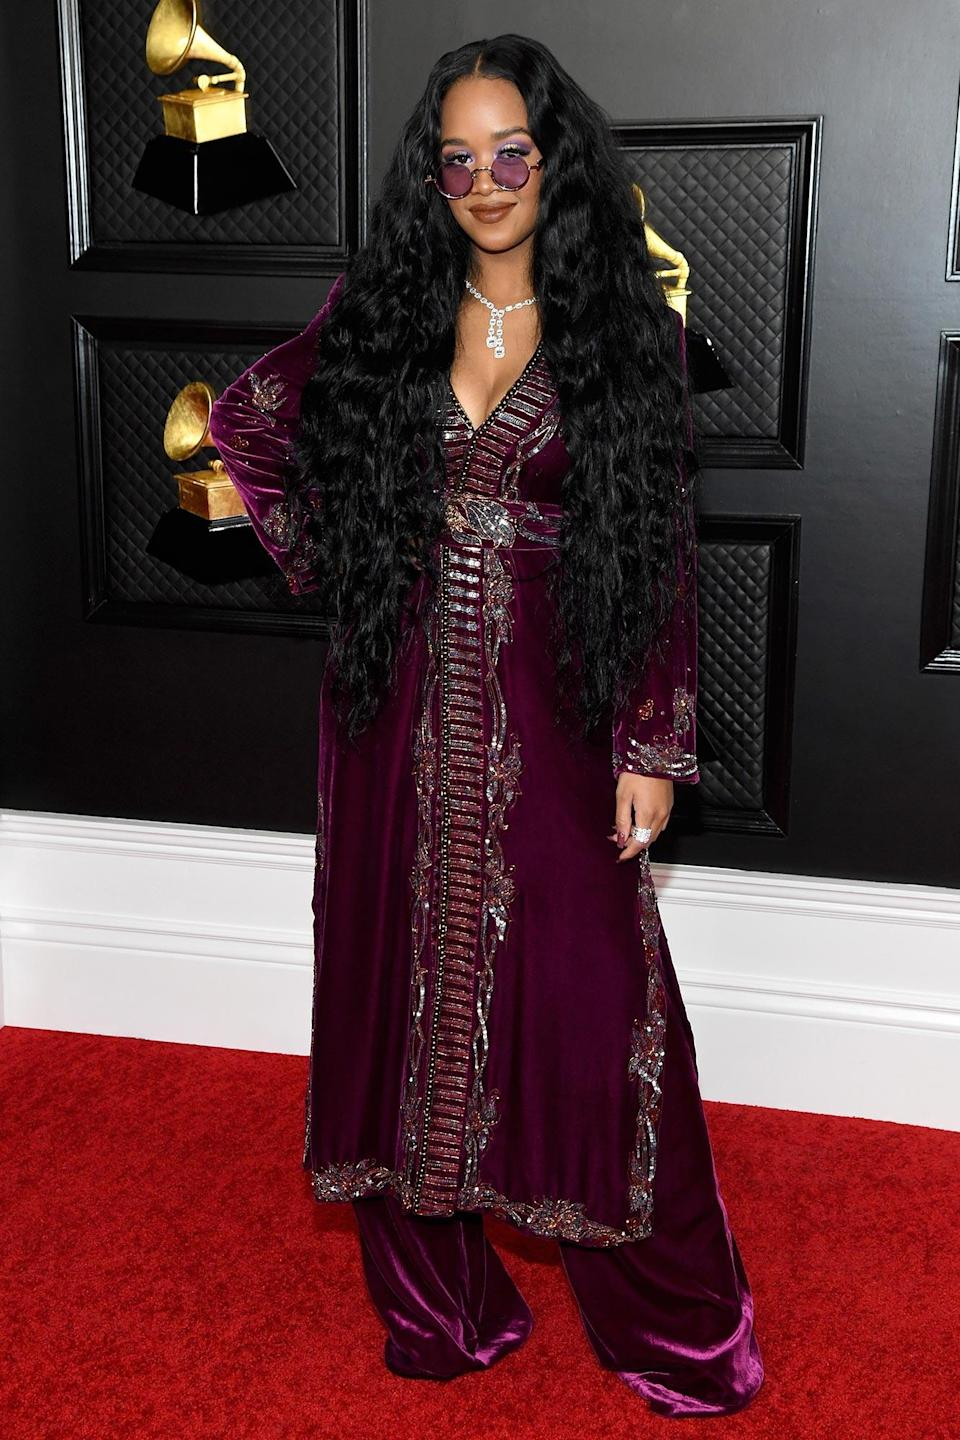 """<p>Though the <a href=""""https://ew.com/awards/grammys/"""" rel=""""nofollow noopener"""" target=""""_blank"""" data-ylk=""""slk:63rd annual Grammy Awards"""" class=""""link rapid-noclick-resp"""">63rd annual Grammy Awards</a> look a little different this year, thankfully there is still a red carpet! Keep clicking to see all the stars who posed for the cameras (socially distanced, of course) at the Los Angeles Convention Center on Sunday.</p>"""